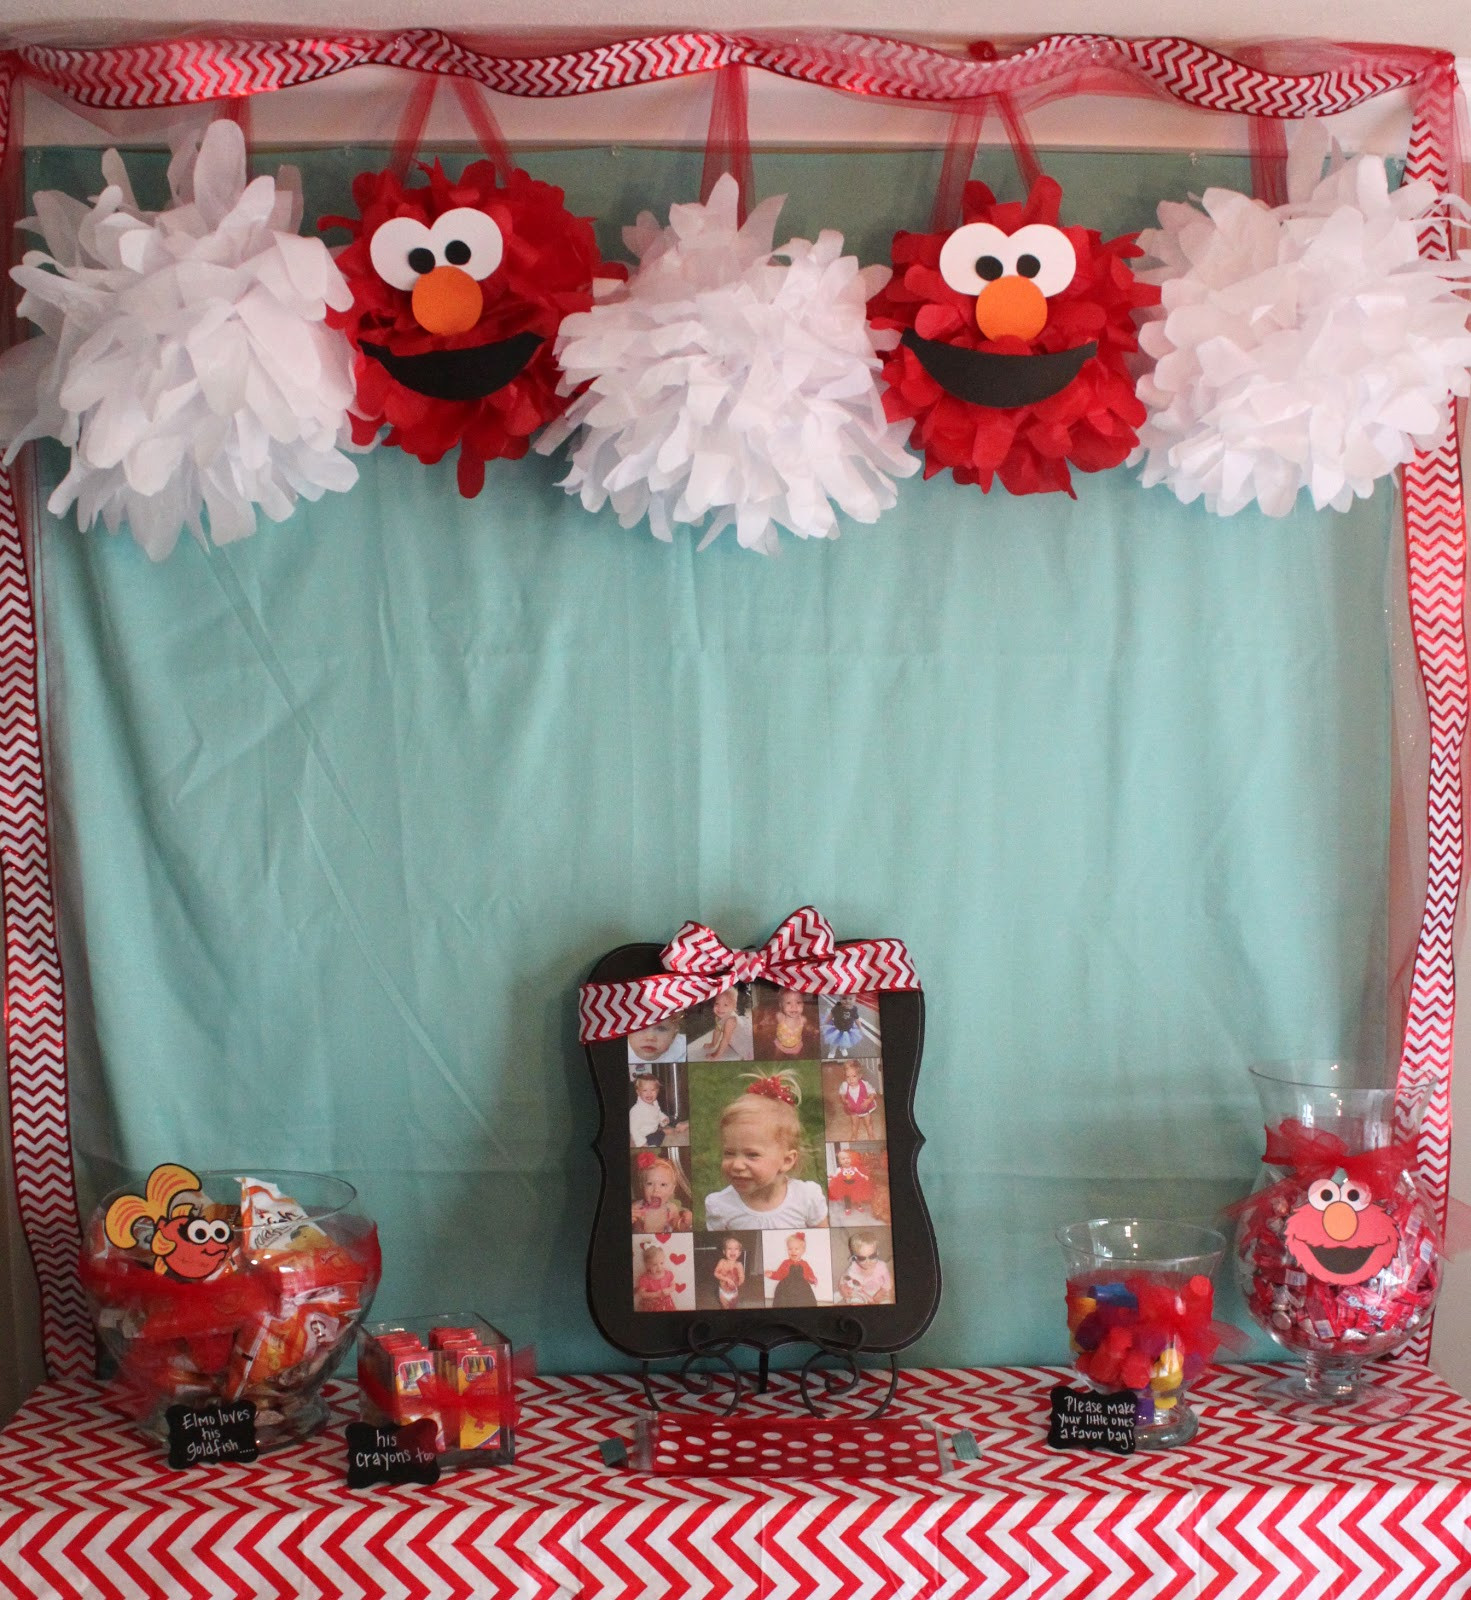 Best ideas about Elmo Birthday Decorations . Save or Pin Handmade Happiness Elmo 2nd Birthday Party Now.